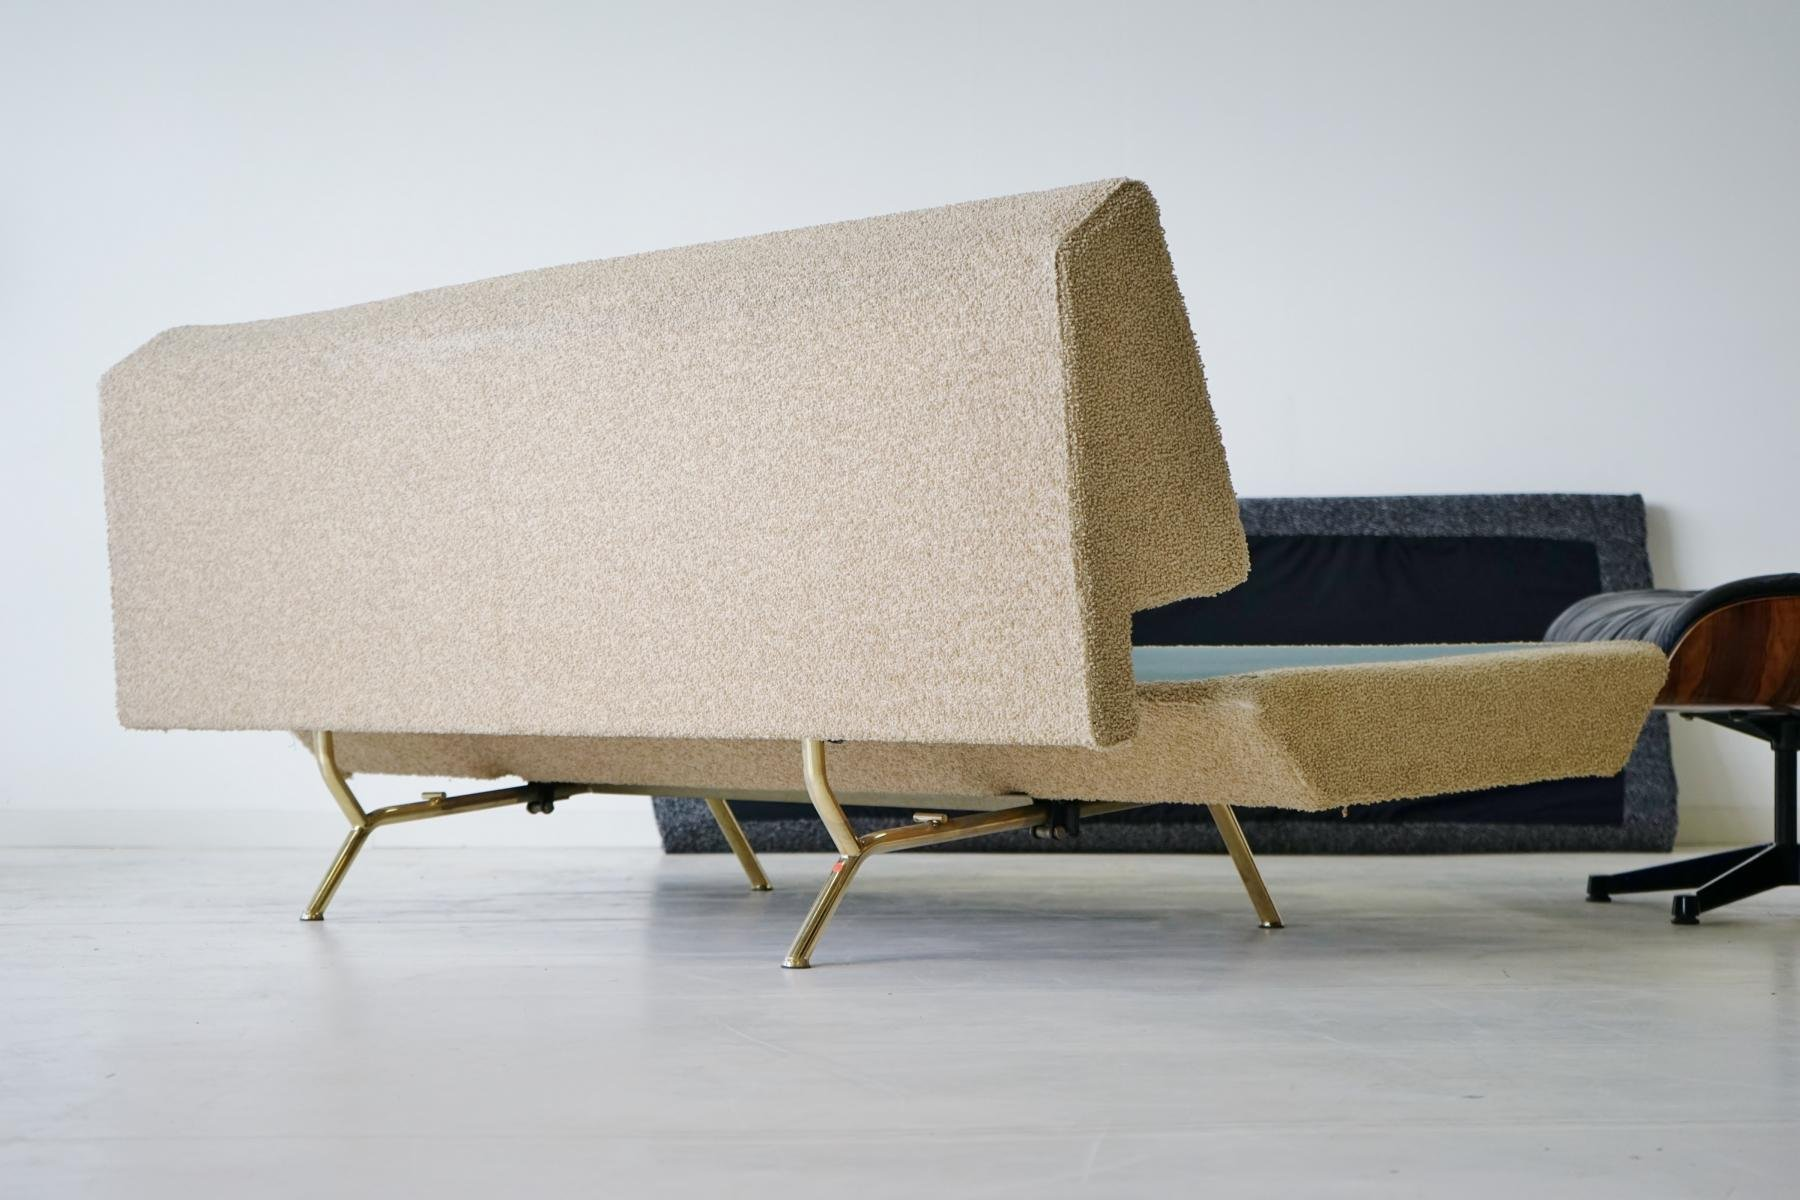 Mid century sofa daybed by marco zanuso for arflex for for Mid century daybed sofa